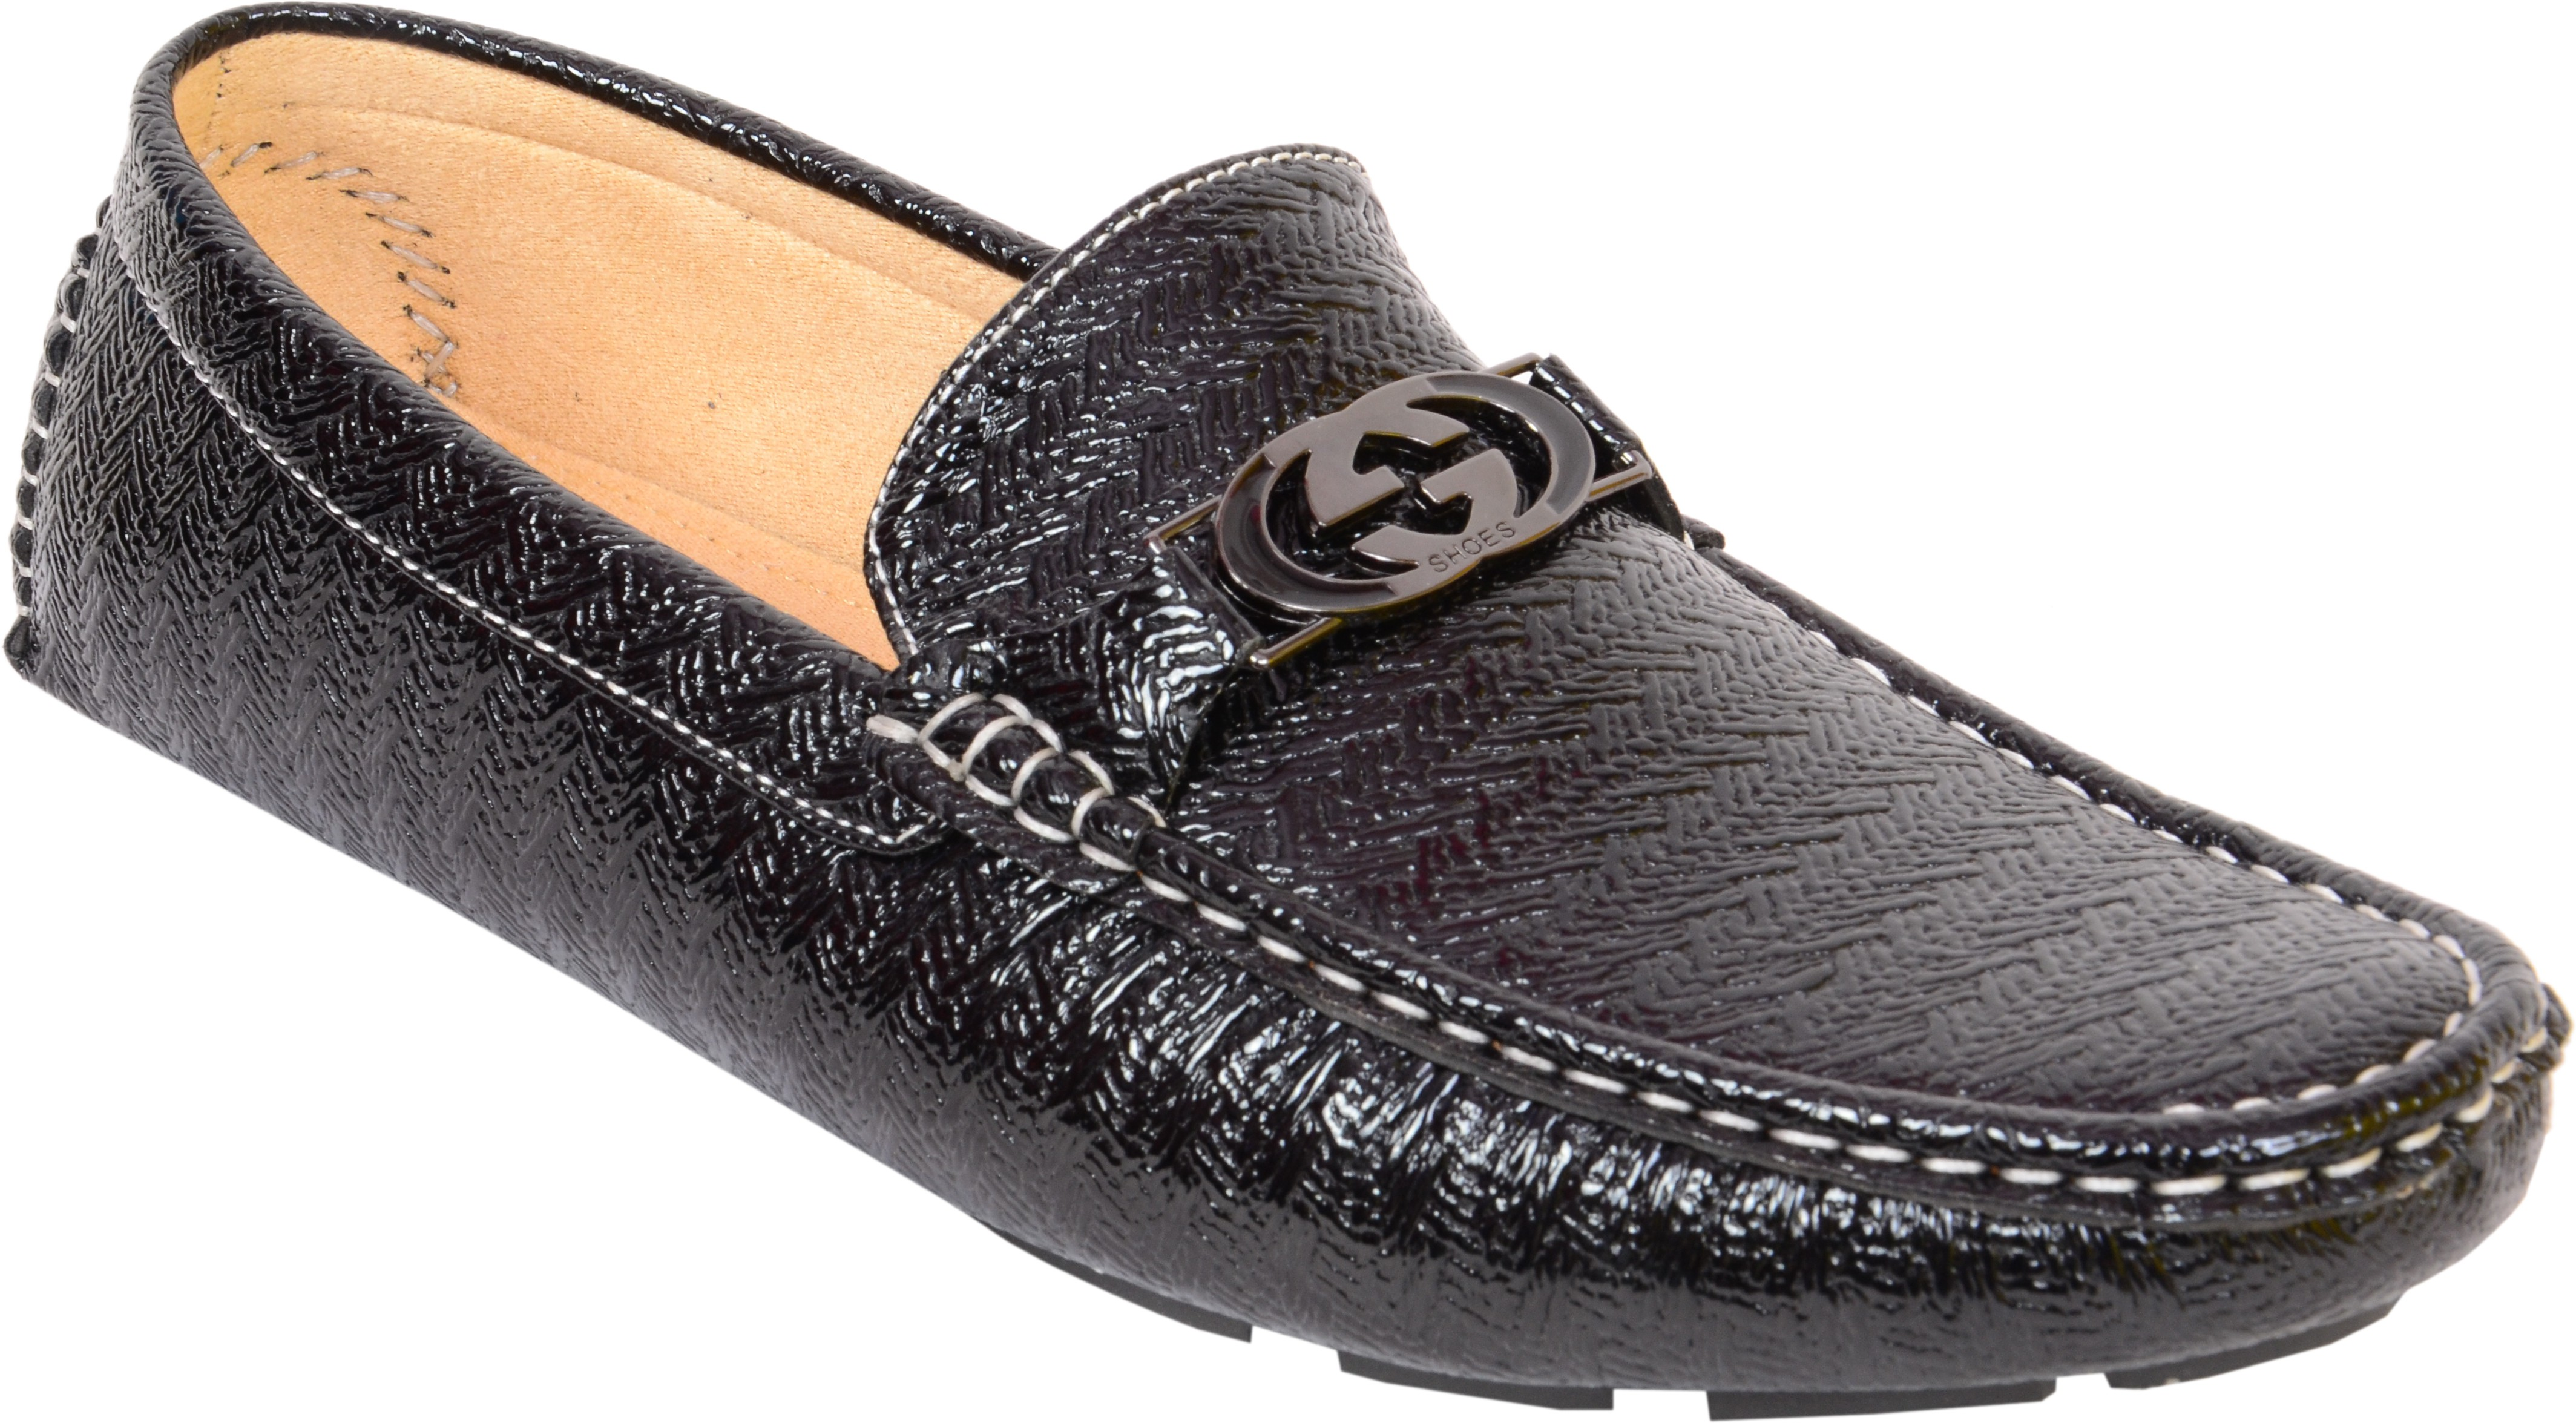 Comfy Classy Loafers(Black)